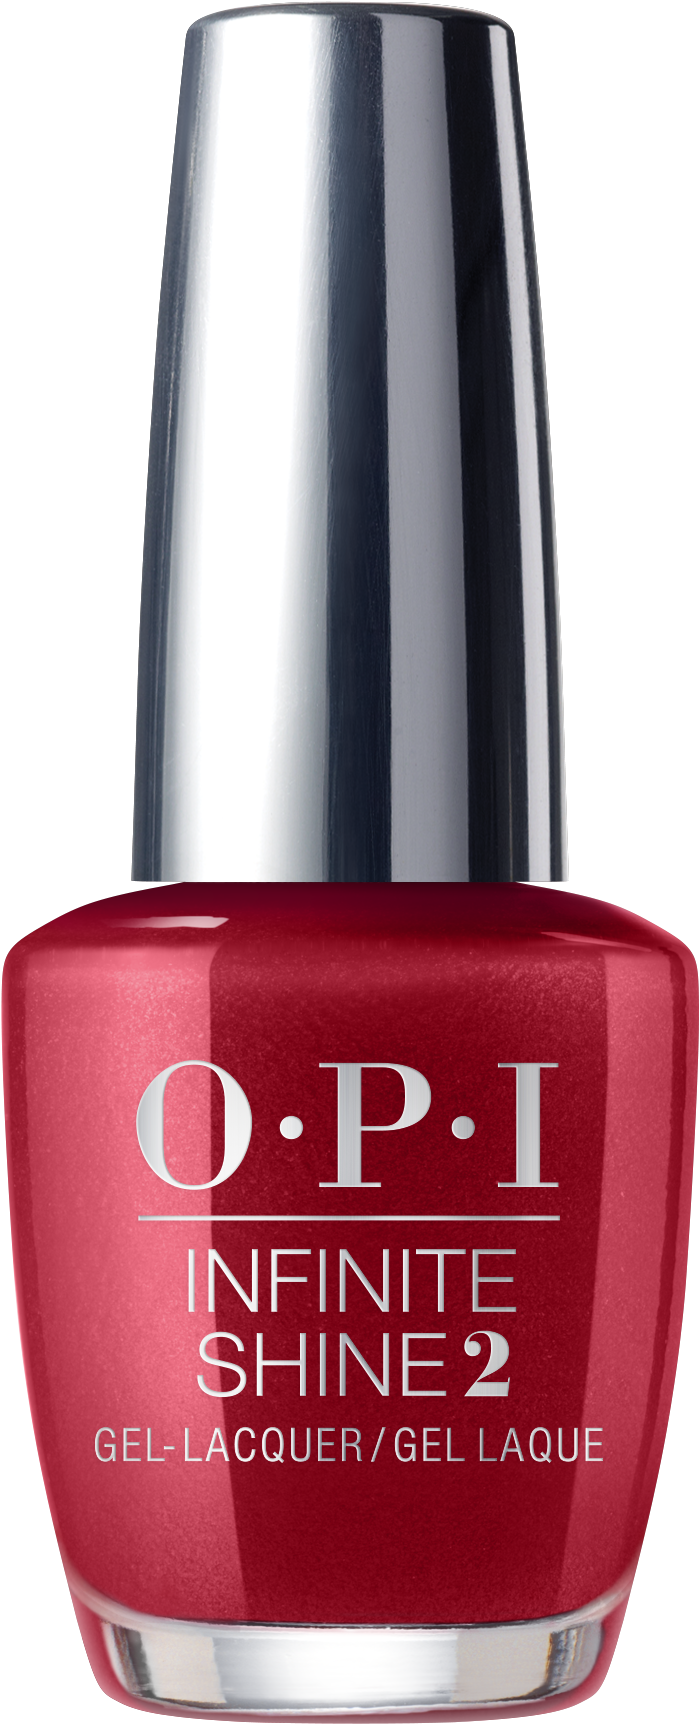 OPI Лак для ногтей An Affair in Red Square / Infinite Shine 15мл opi лак для ногтей race red 15 мл